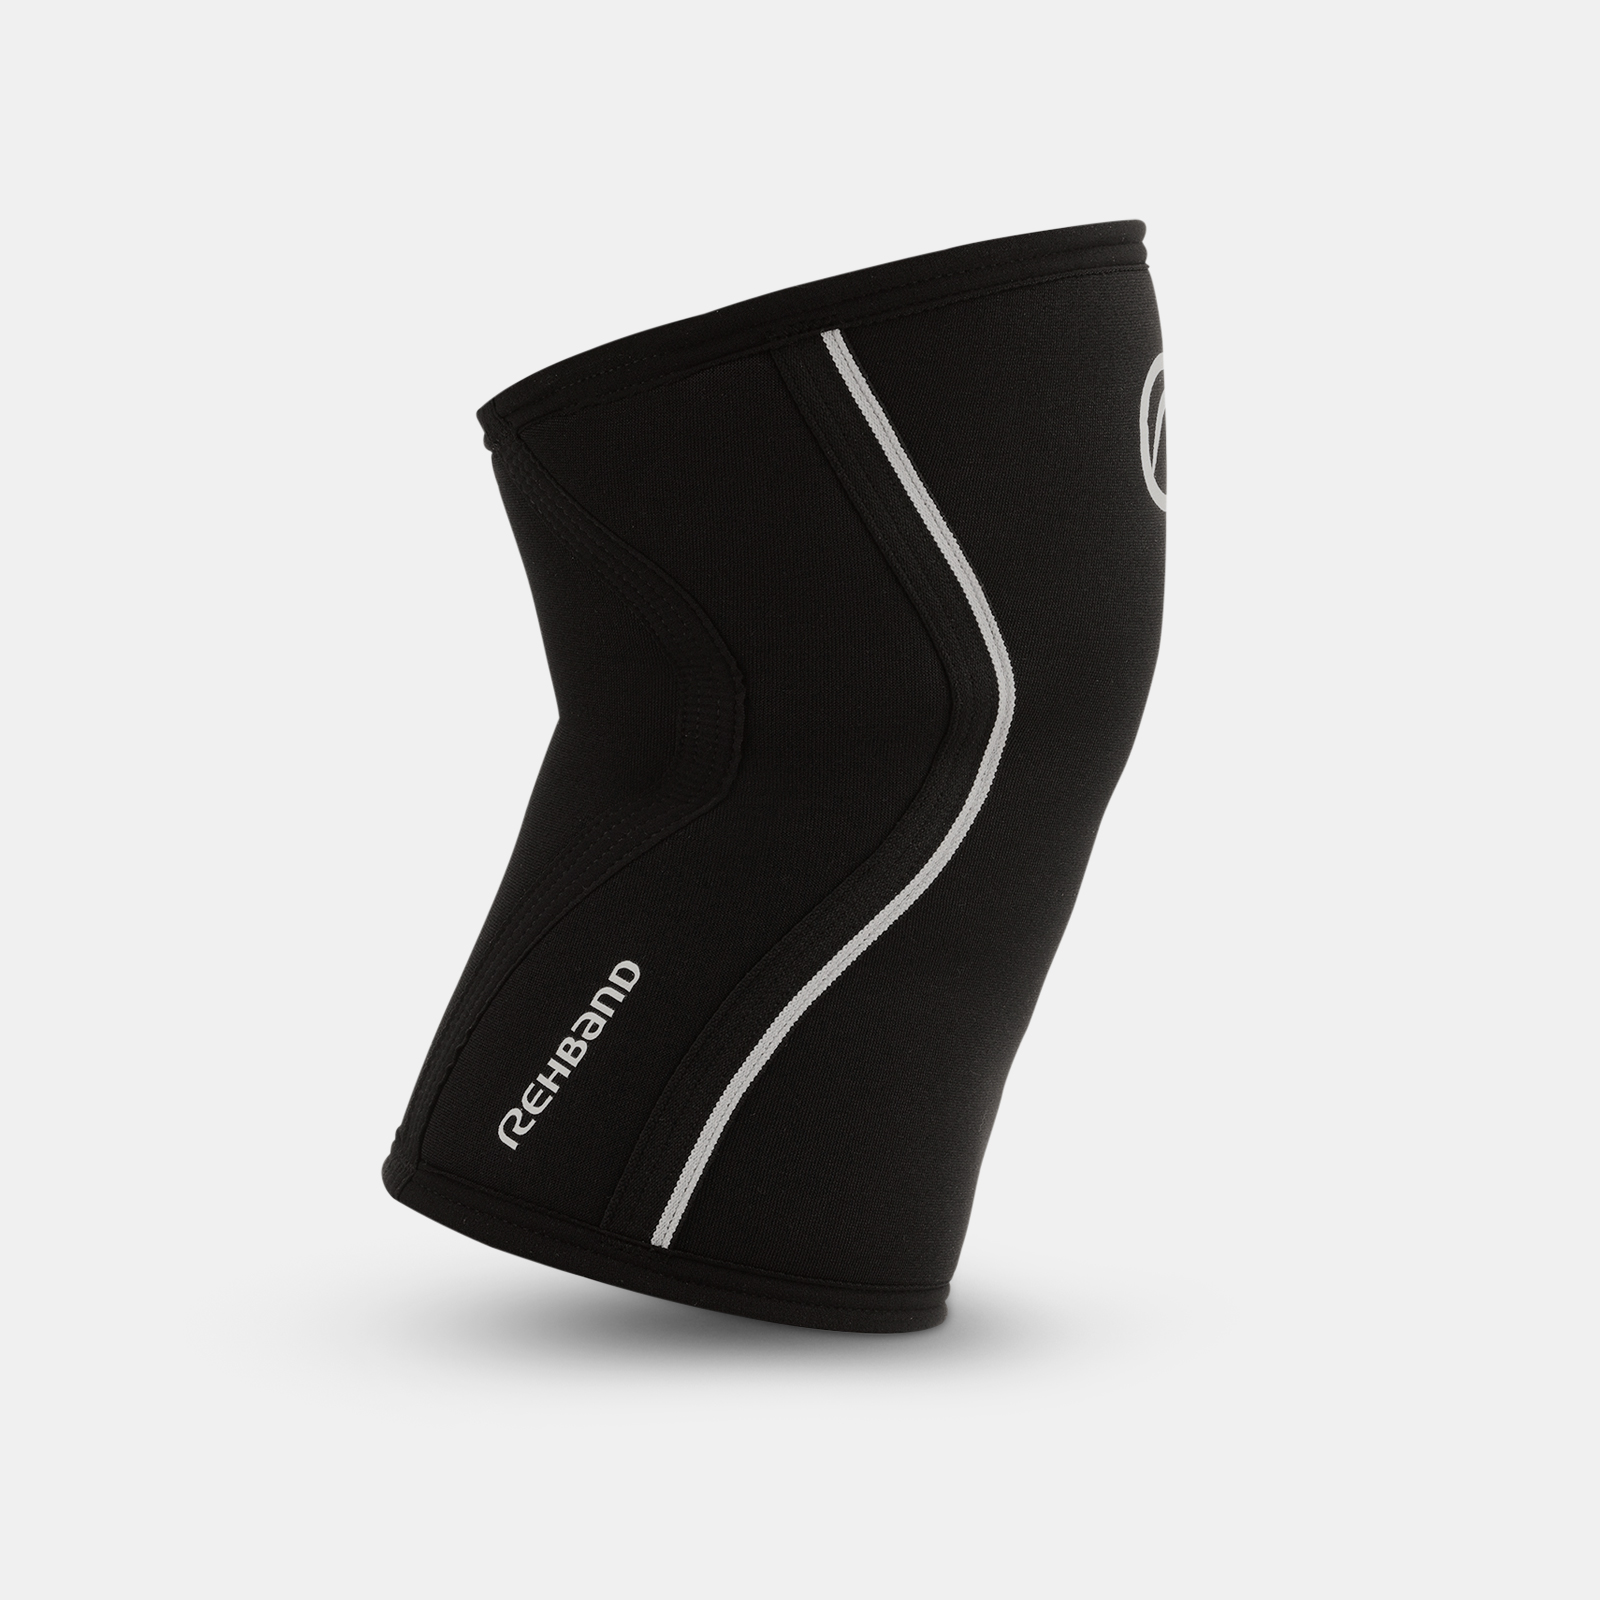 Rehband RX Knee Sleeve - 7mm Black/White image